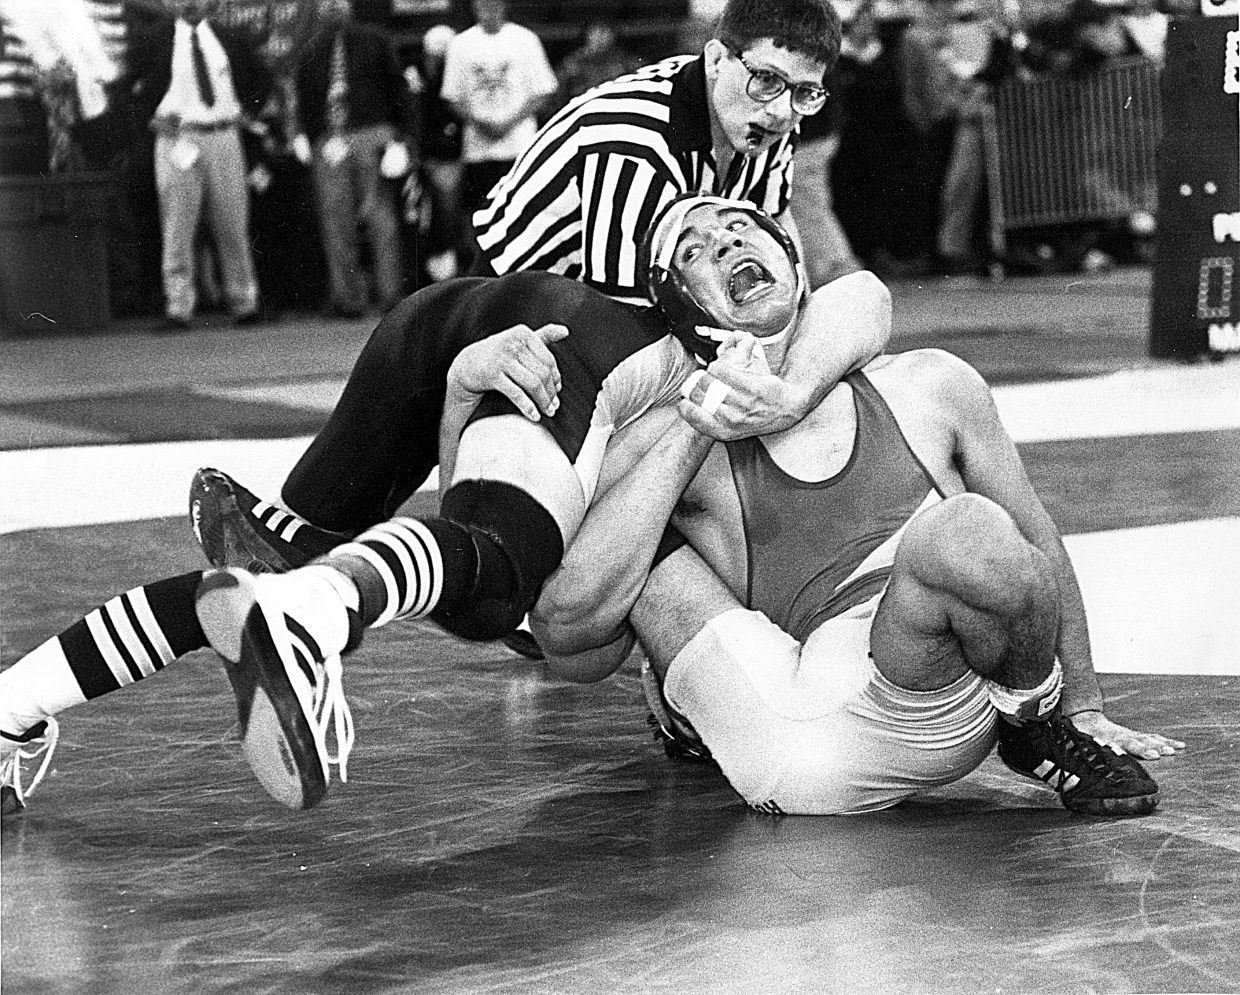 Feb. 1998 — Meeker's Isaac LeBlanc takes it to Rocky Ford senior Miguel Herrara in the 145-pound bracket of the Colorado State Wresting Championships in February 1998. Normally, I wouldn't have been covering this school, but our sister paper in Craig had asked if we might cover a couple of teams, including Meeker, that year at the championships. I think this may be my favorite wrestling photograph I have ever taken.